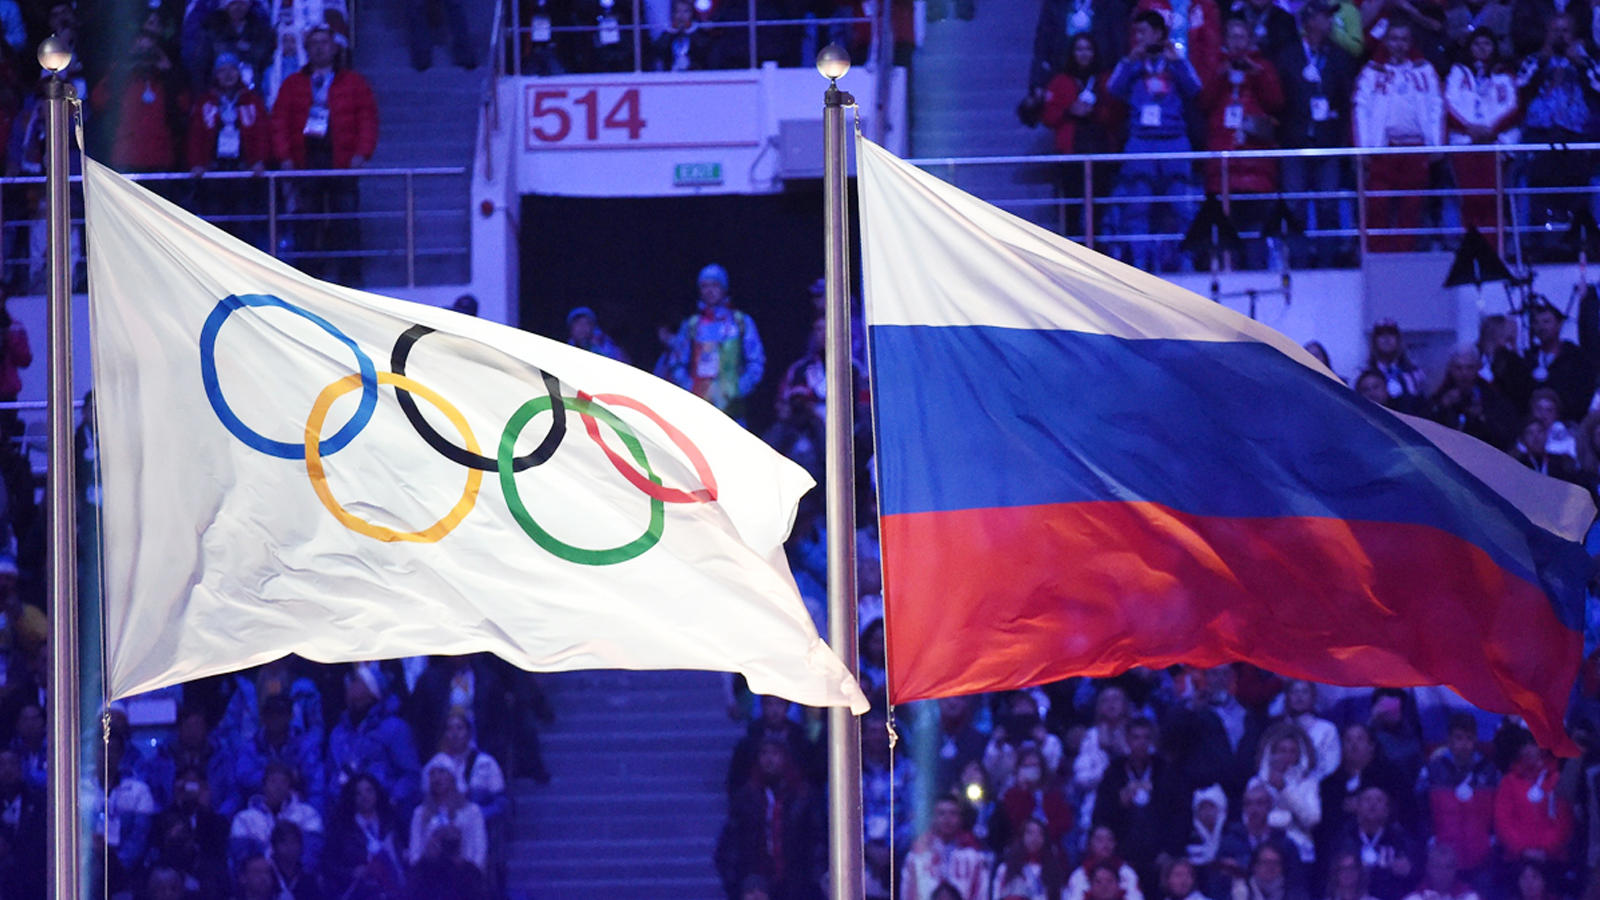 doping-scandal-russia-banned-from-2020-olympics-and-from-international-sports-for-4-years